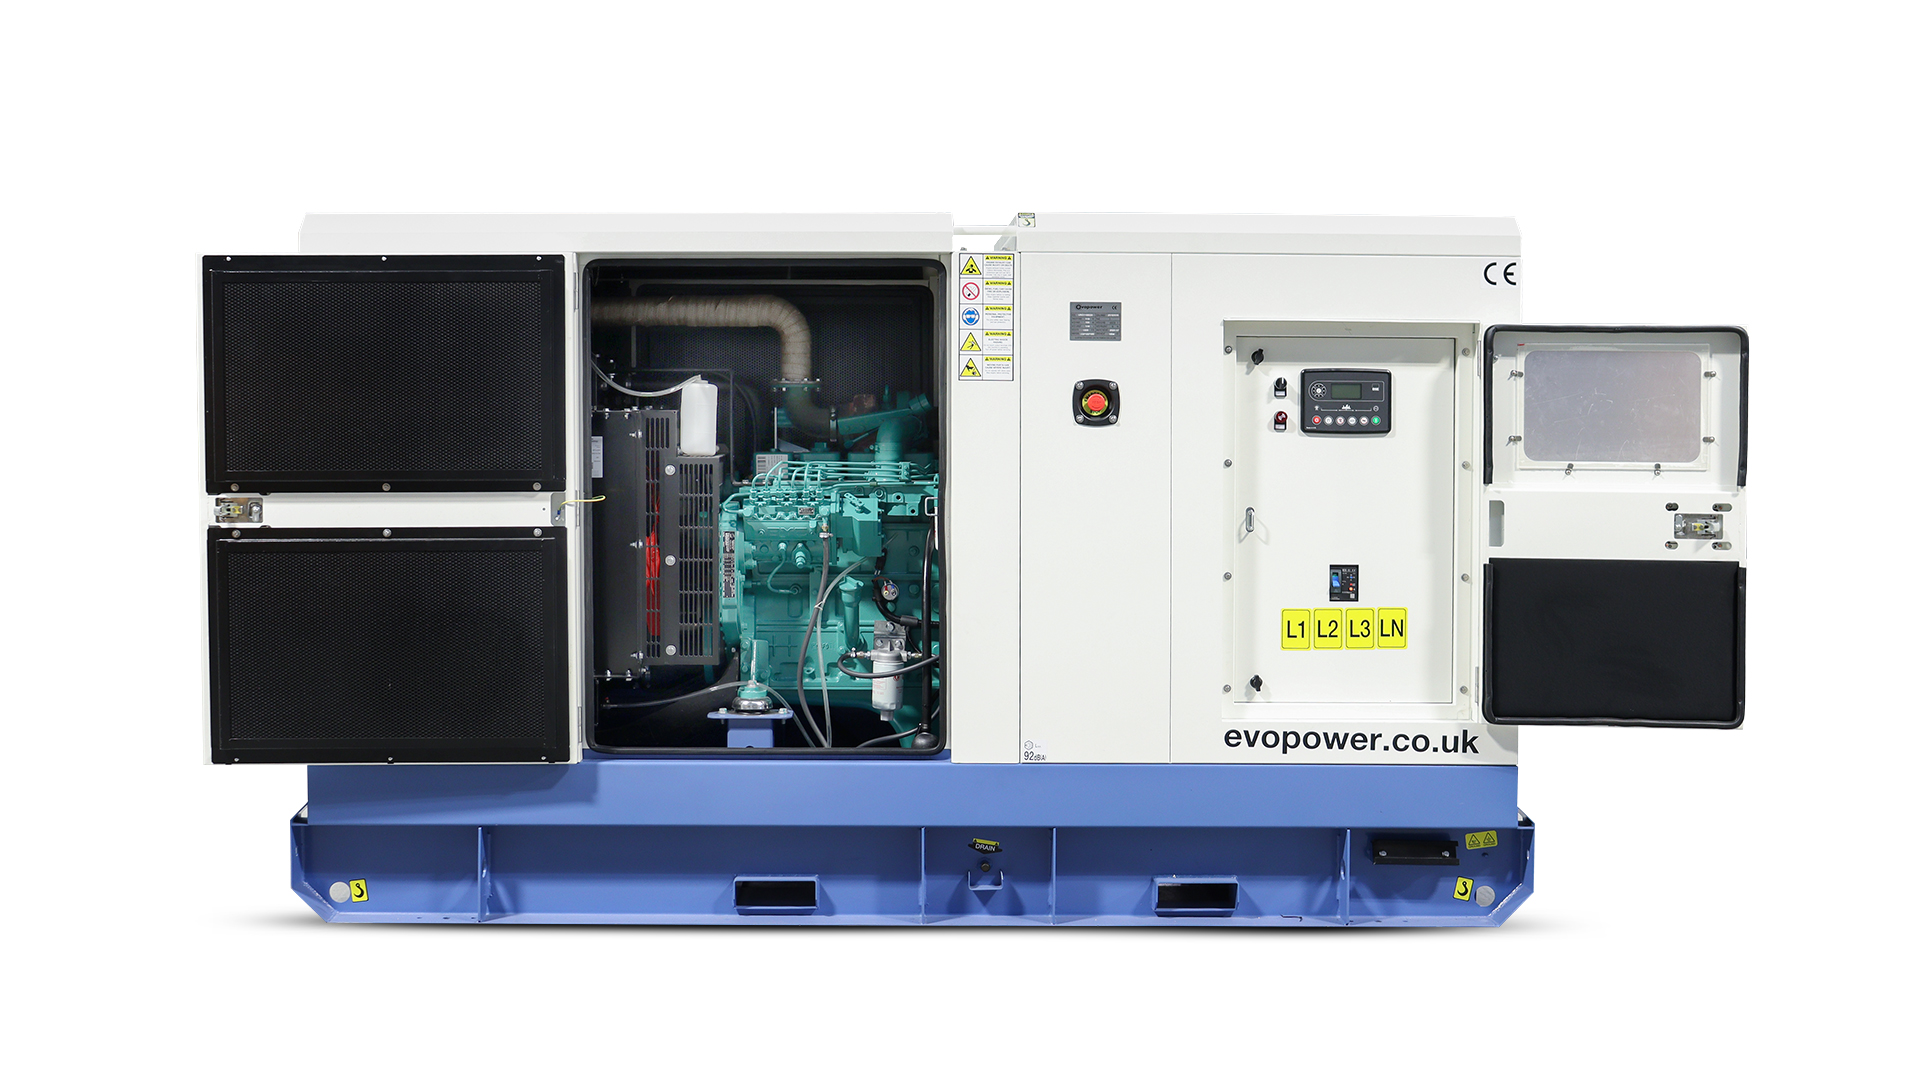 UKC110ECO generator with canopy doors opened to reveal the engine and control panel